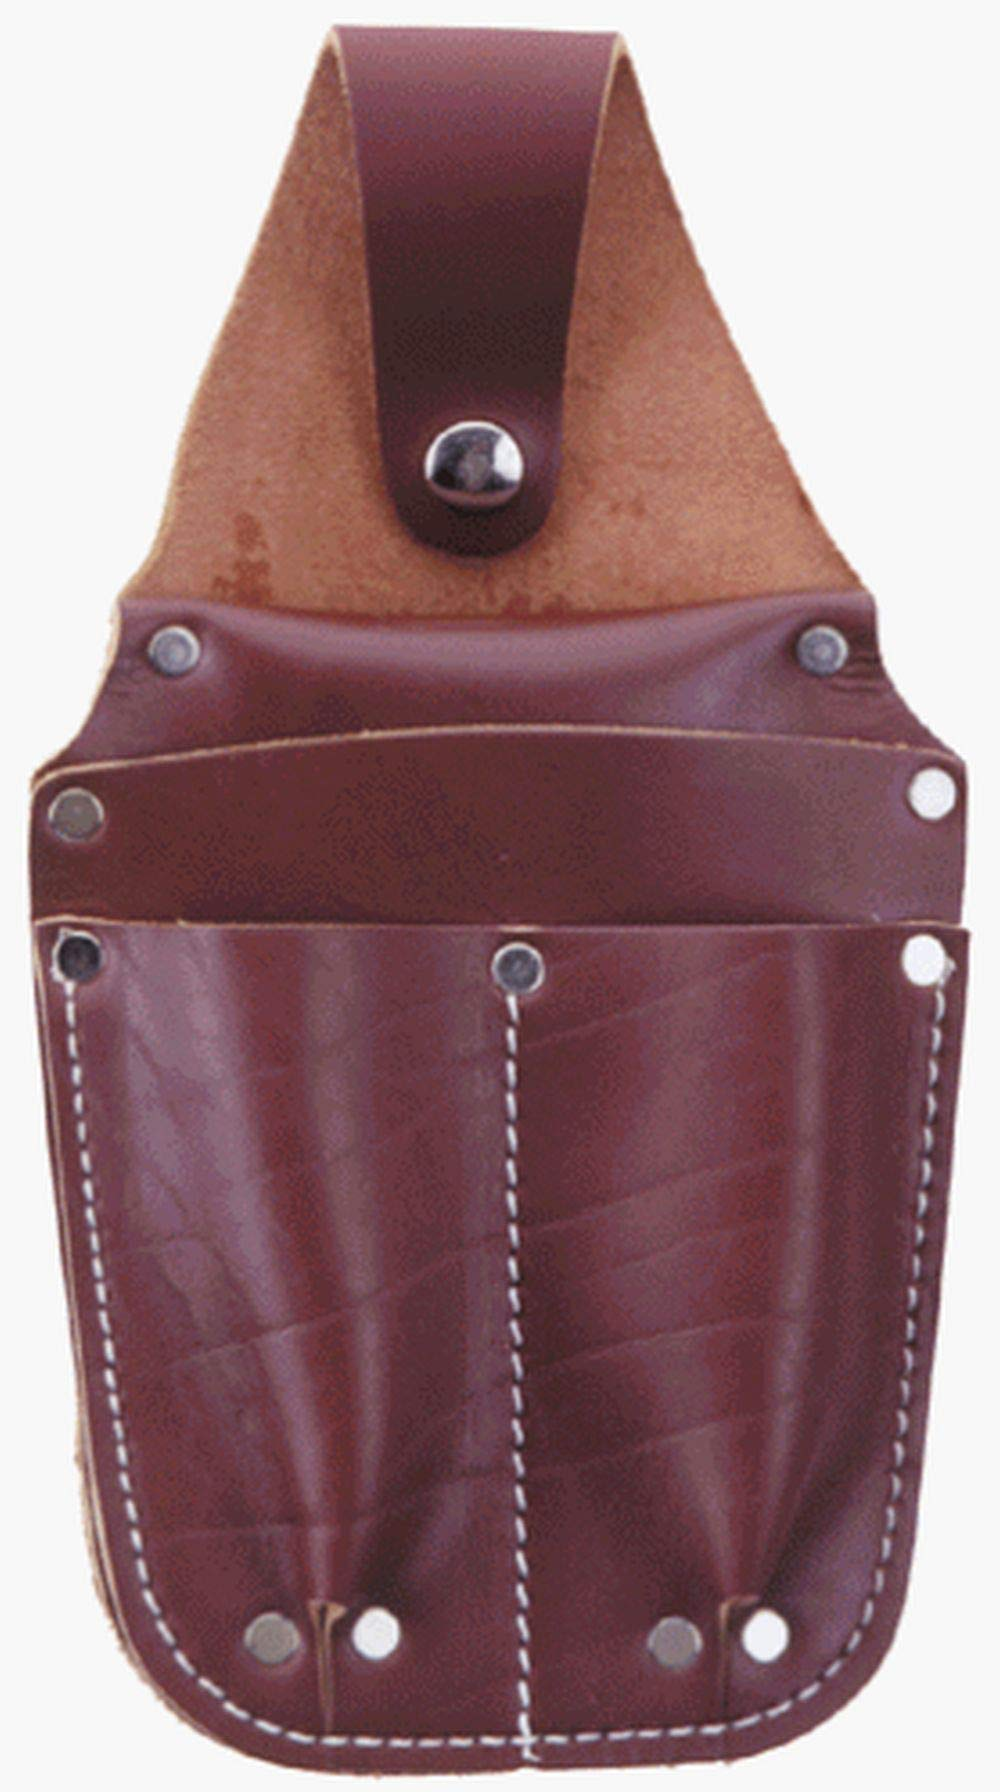 Occidental Leather 5057 Pocket Caddy by Occidental Leather